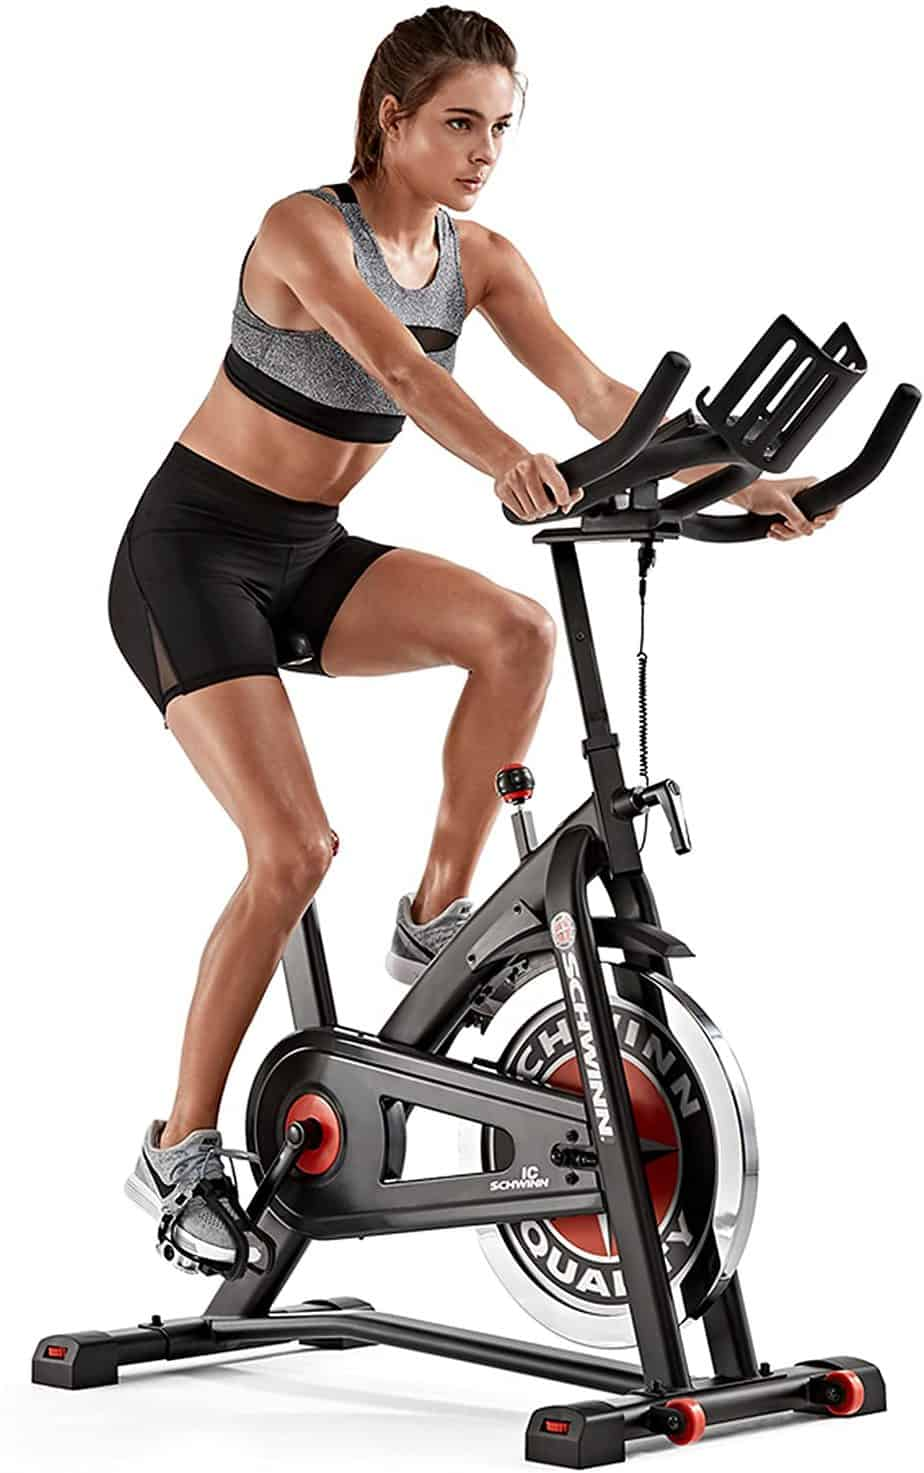 A lady exercises with the Schwinn IC3 Indoor Cycling Exercise Bike